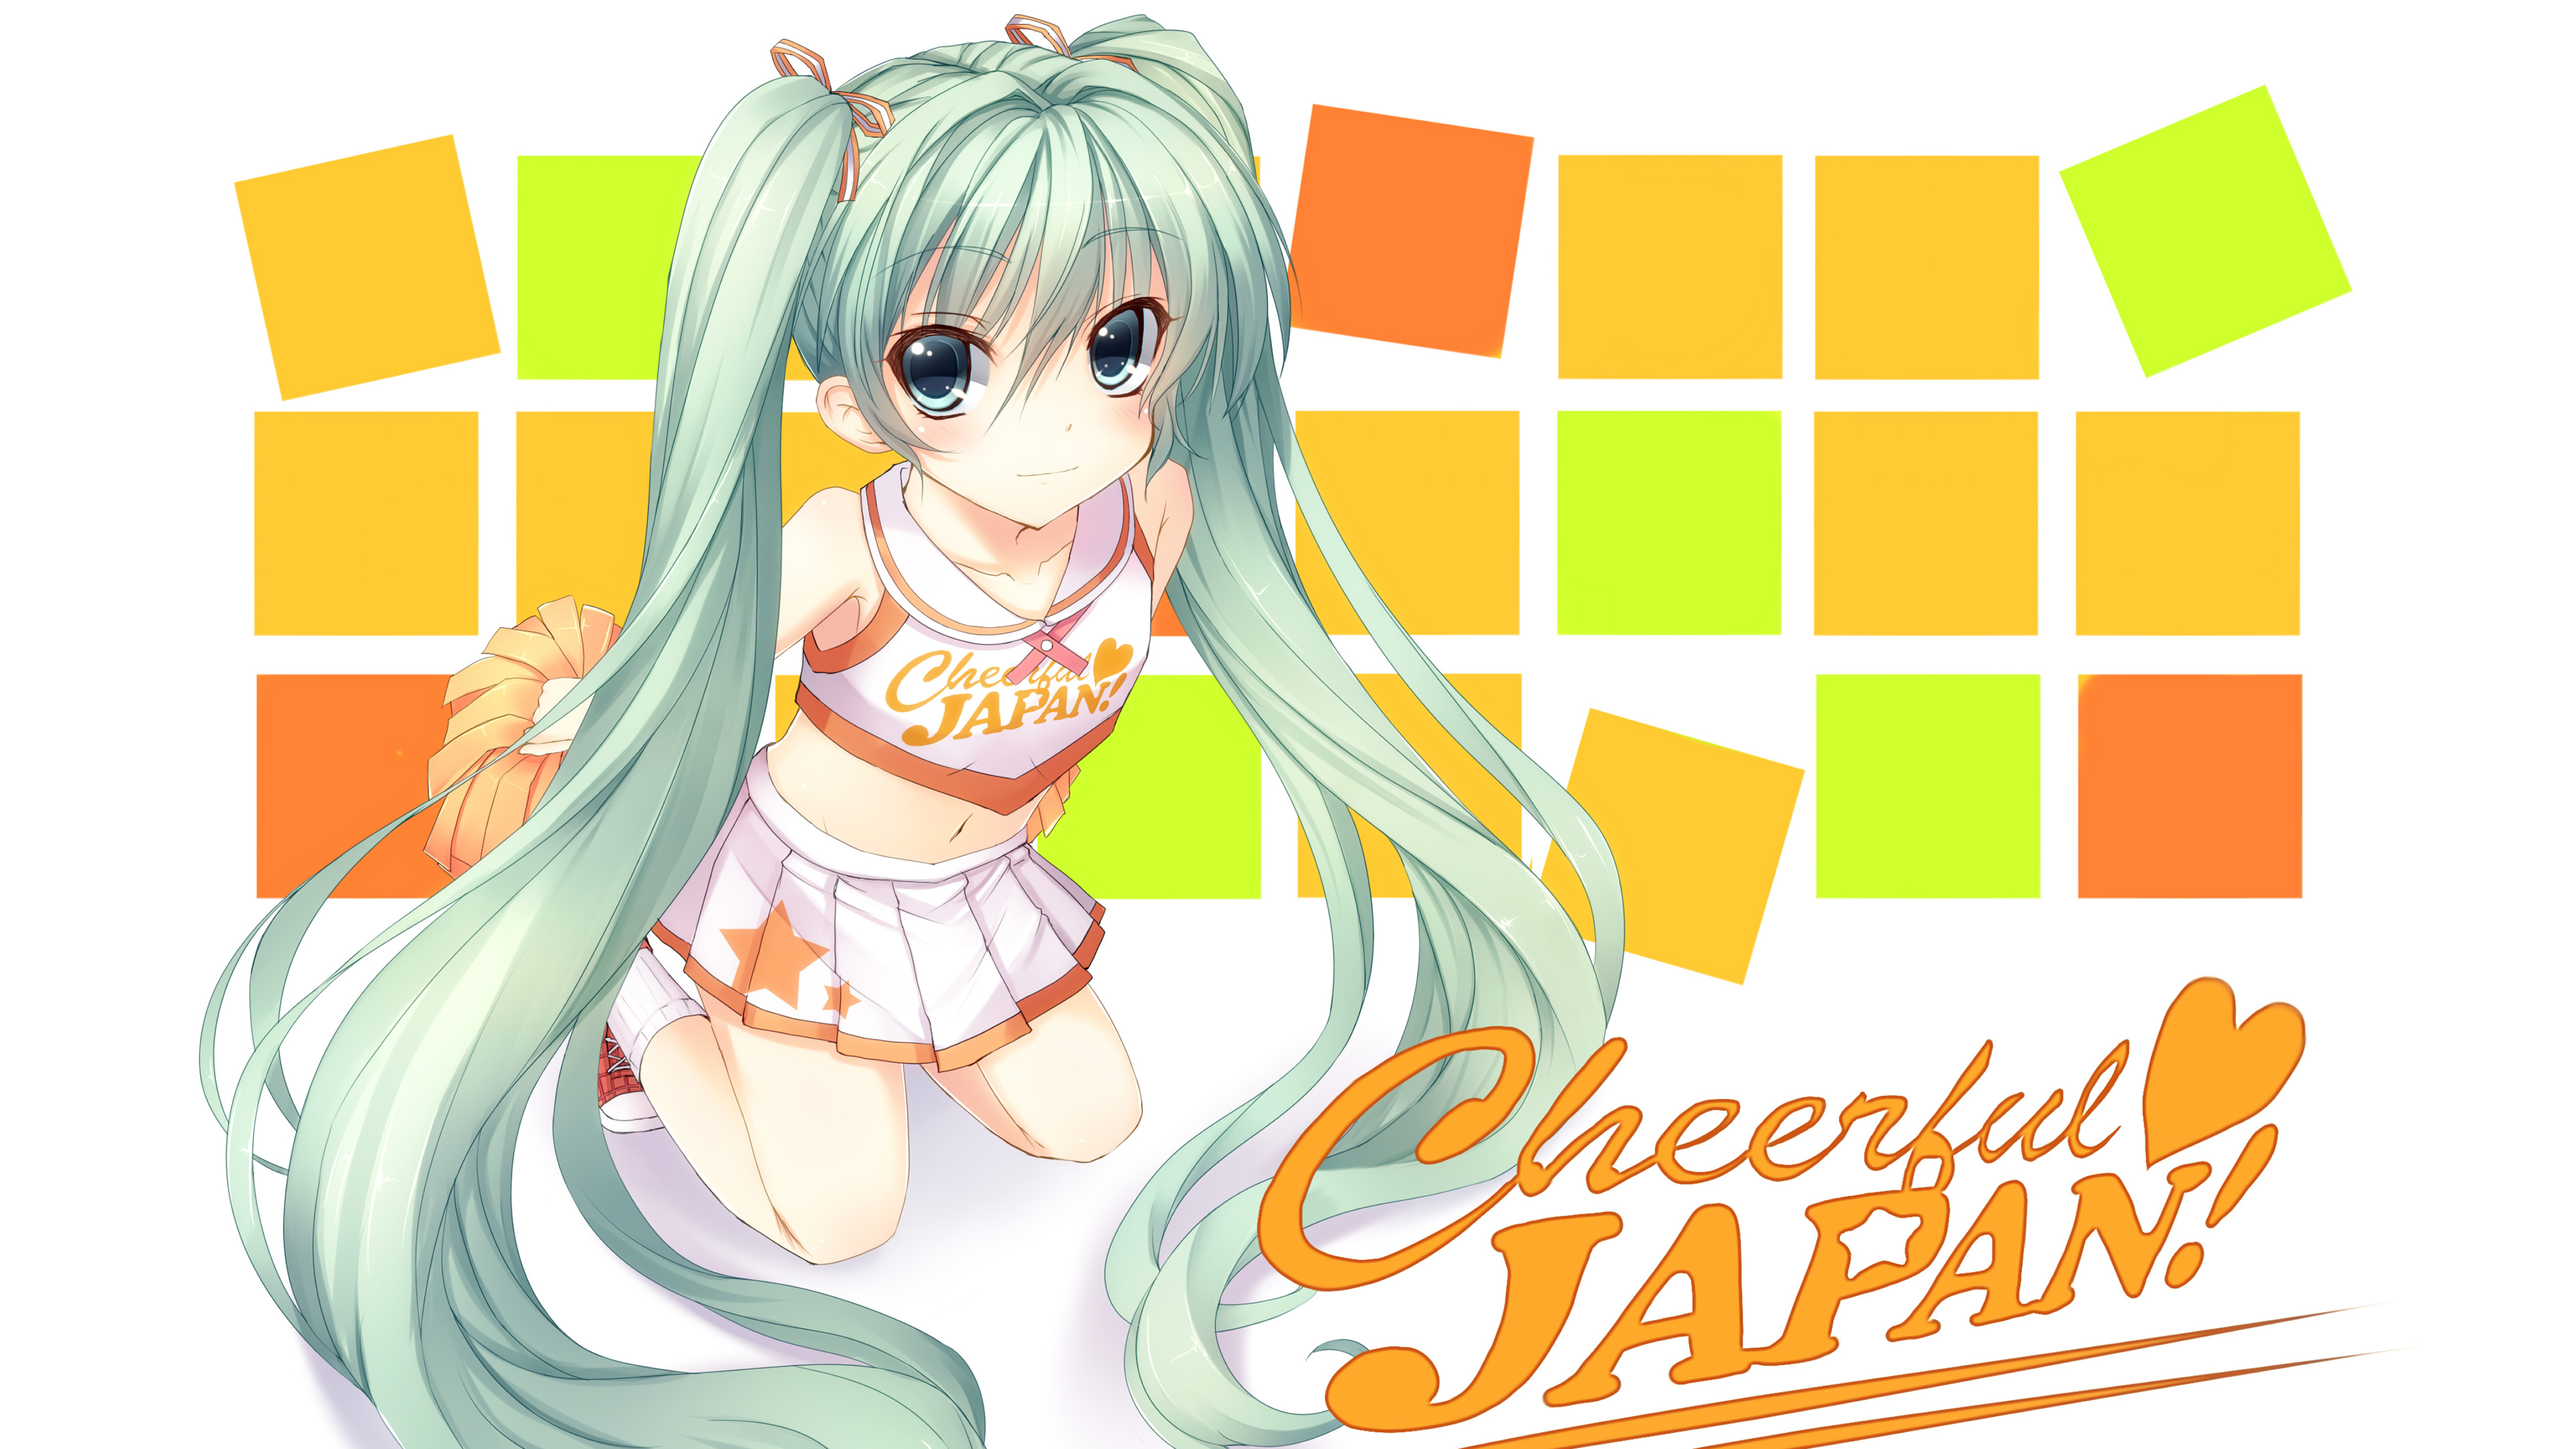 Cheerful Japan Hatsune Miku Vocaloid499408637 - Cheerful Japan Hatsune Miku Vocaloid - Vocaloid, Miku, Japan, Hatsune, Cheerful